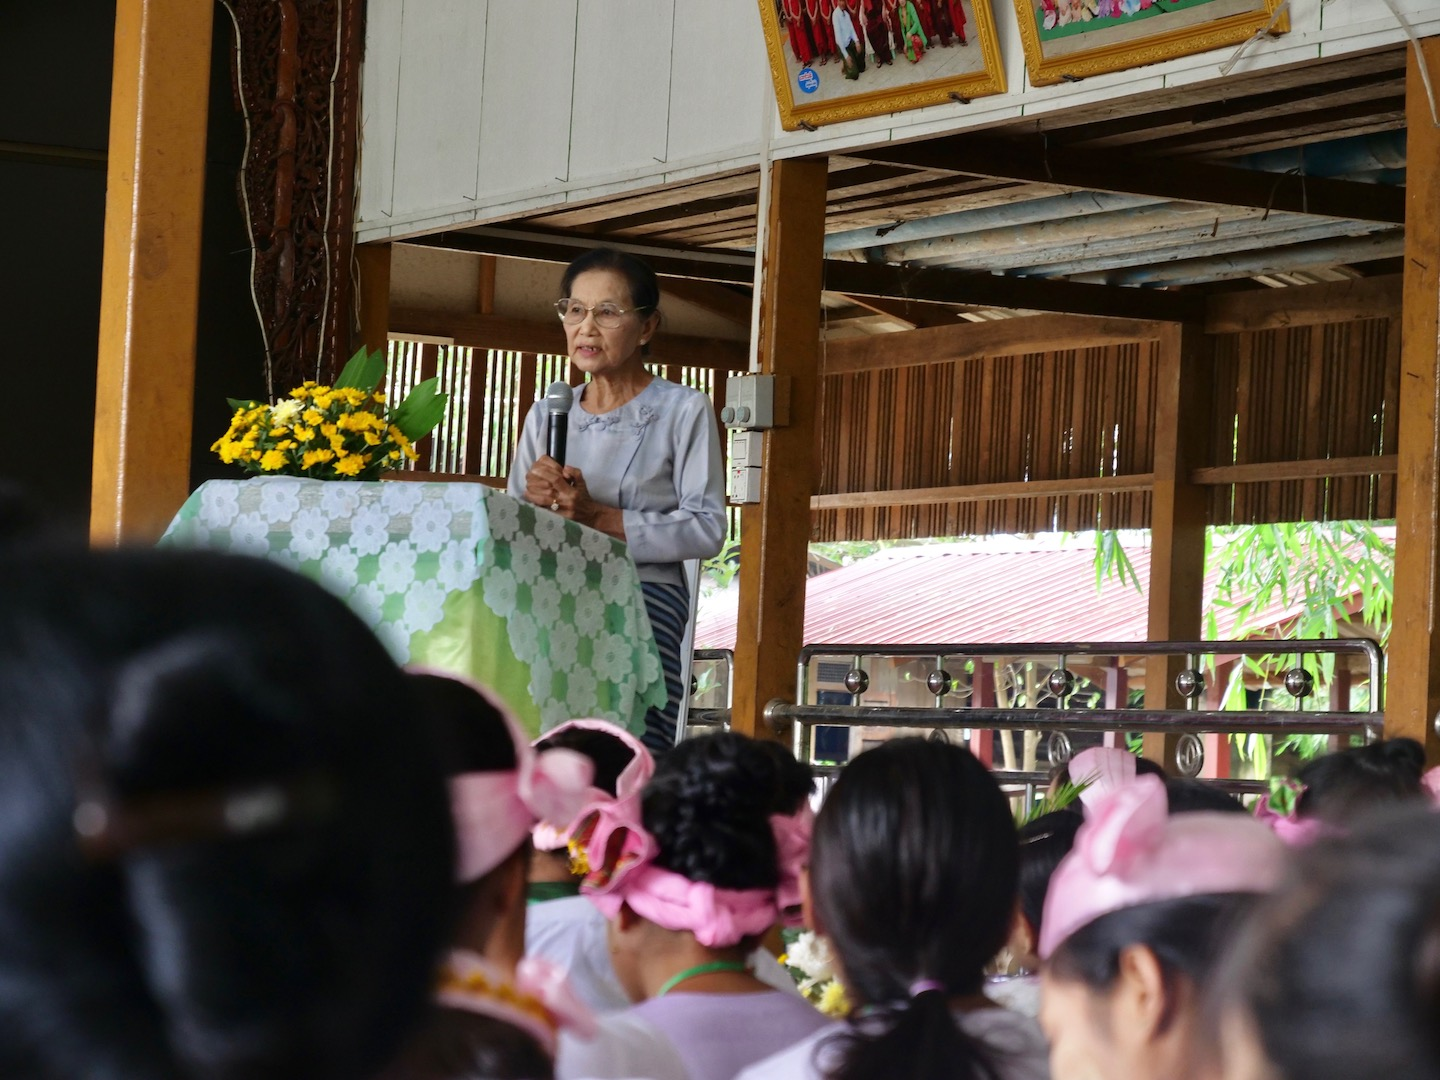 Daw Khin Pyone, a long-time advocate for Shan-ni culture and author of numerous Shan-ni educational texts, addressing the graduating class.